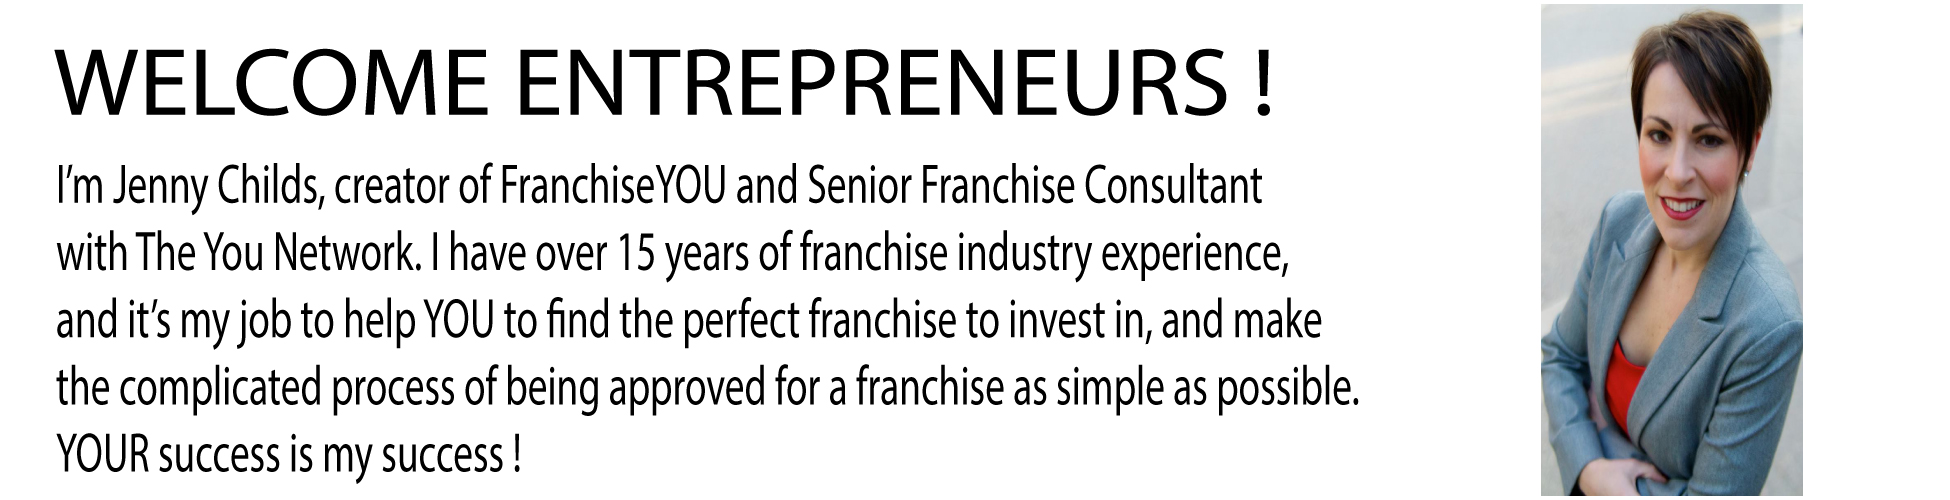 franchise-consultant,franchise-guide,franchise-help,how-to-start-franchise,guide-to-franchise-business